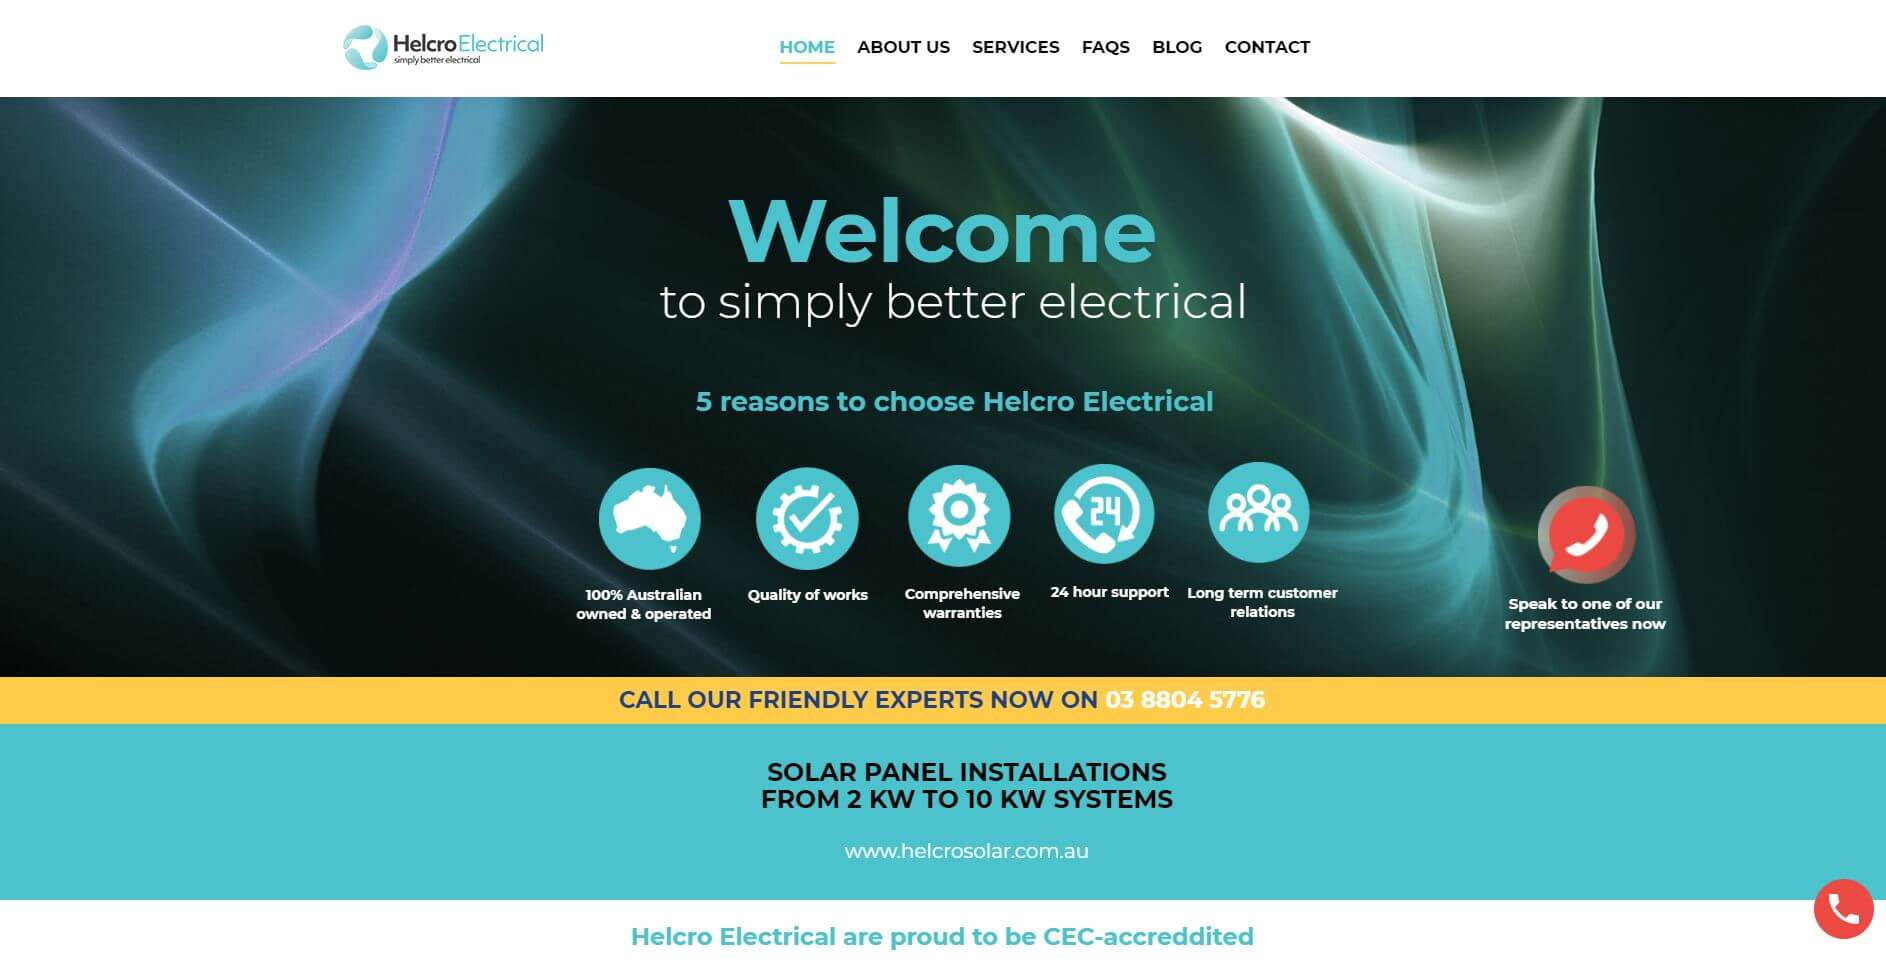 Helcro Electrical